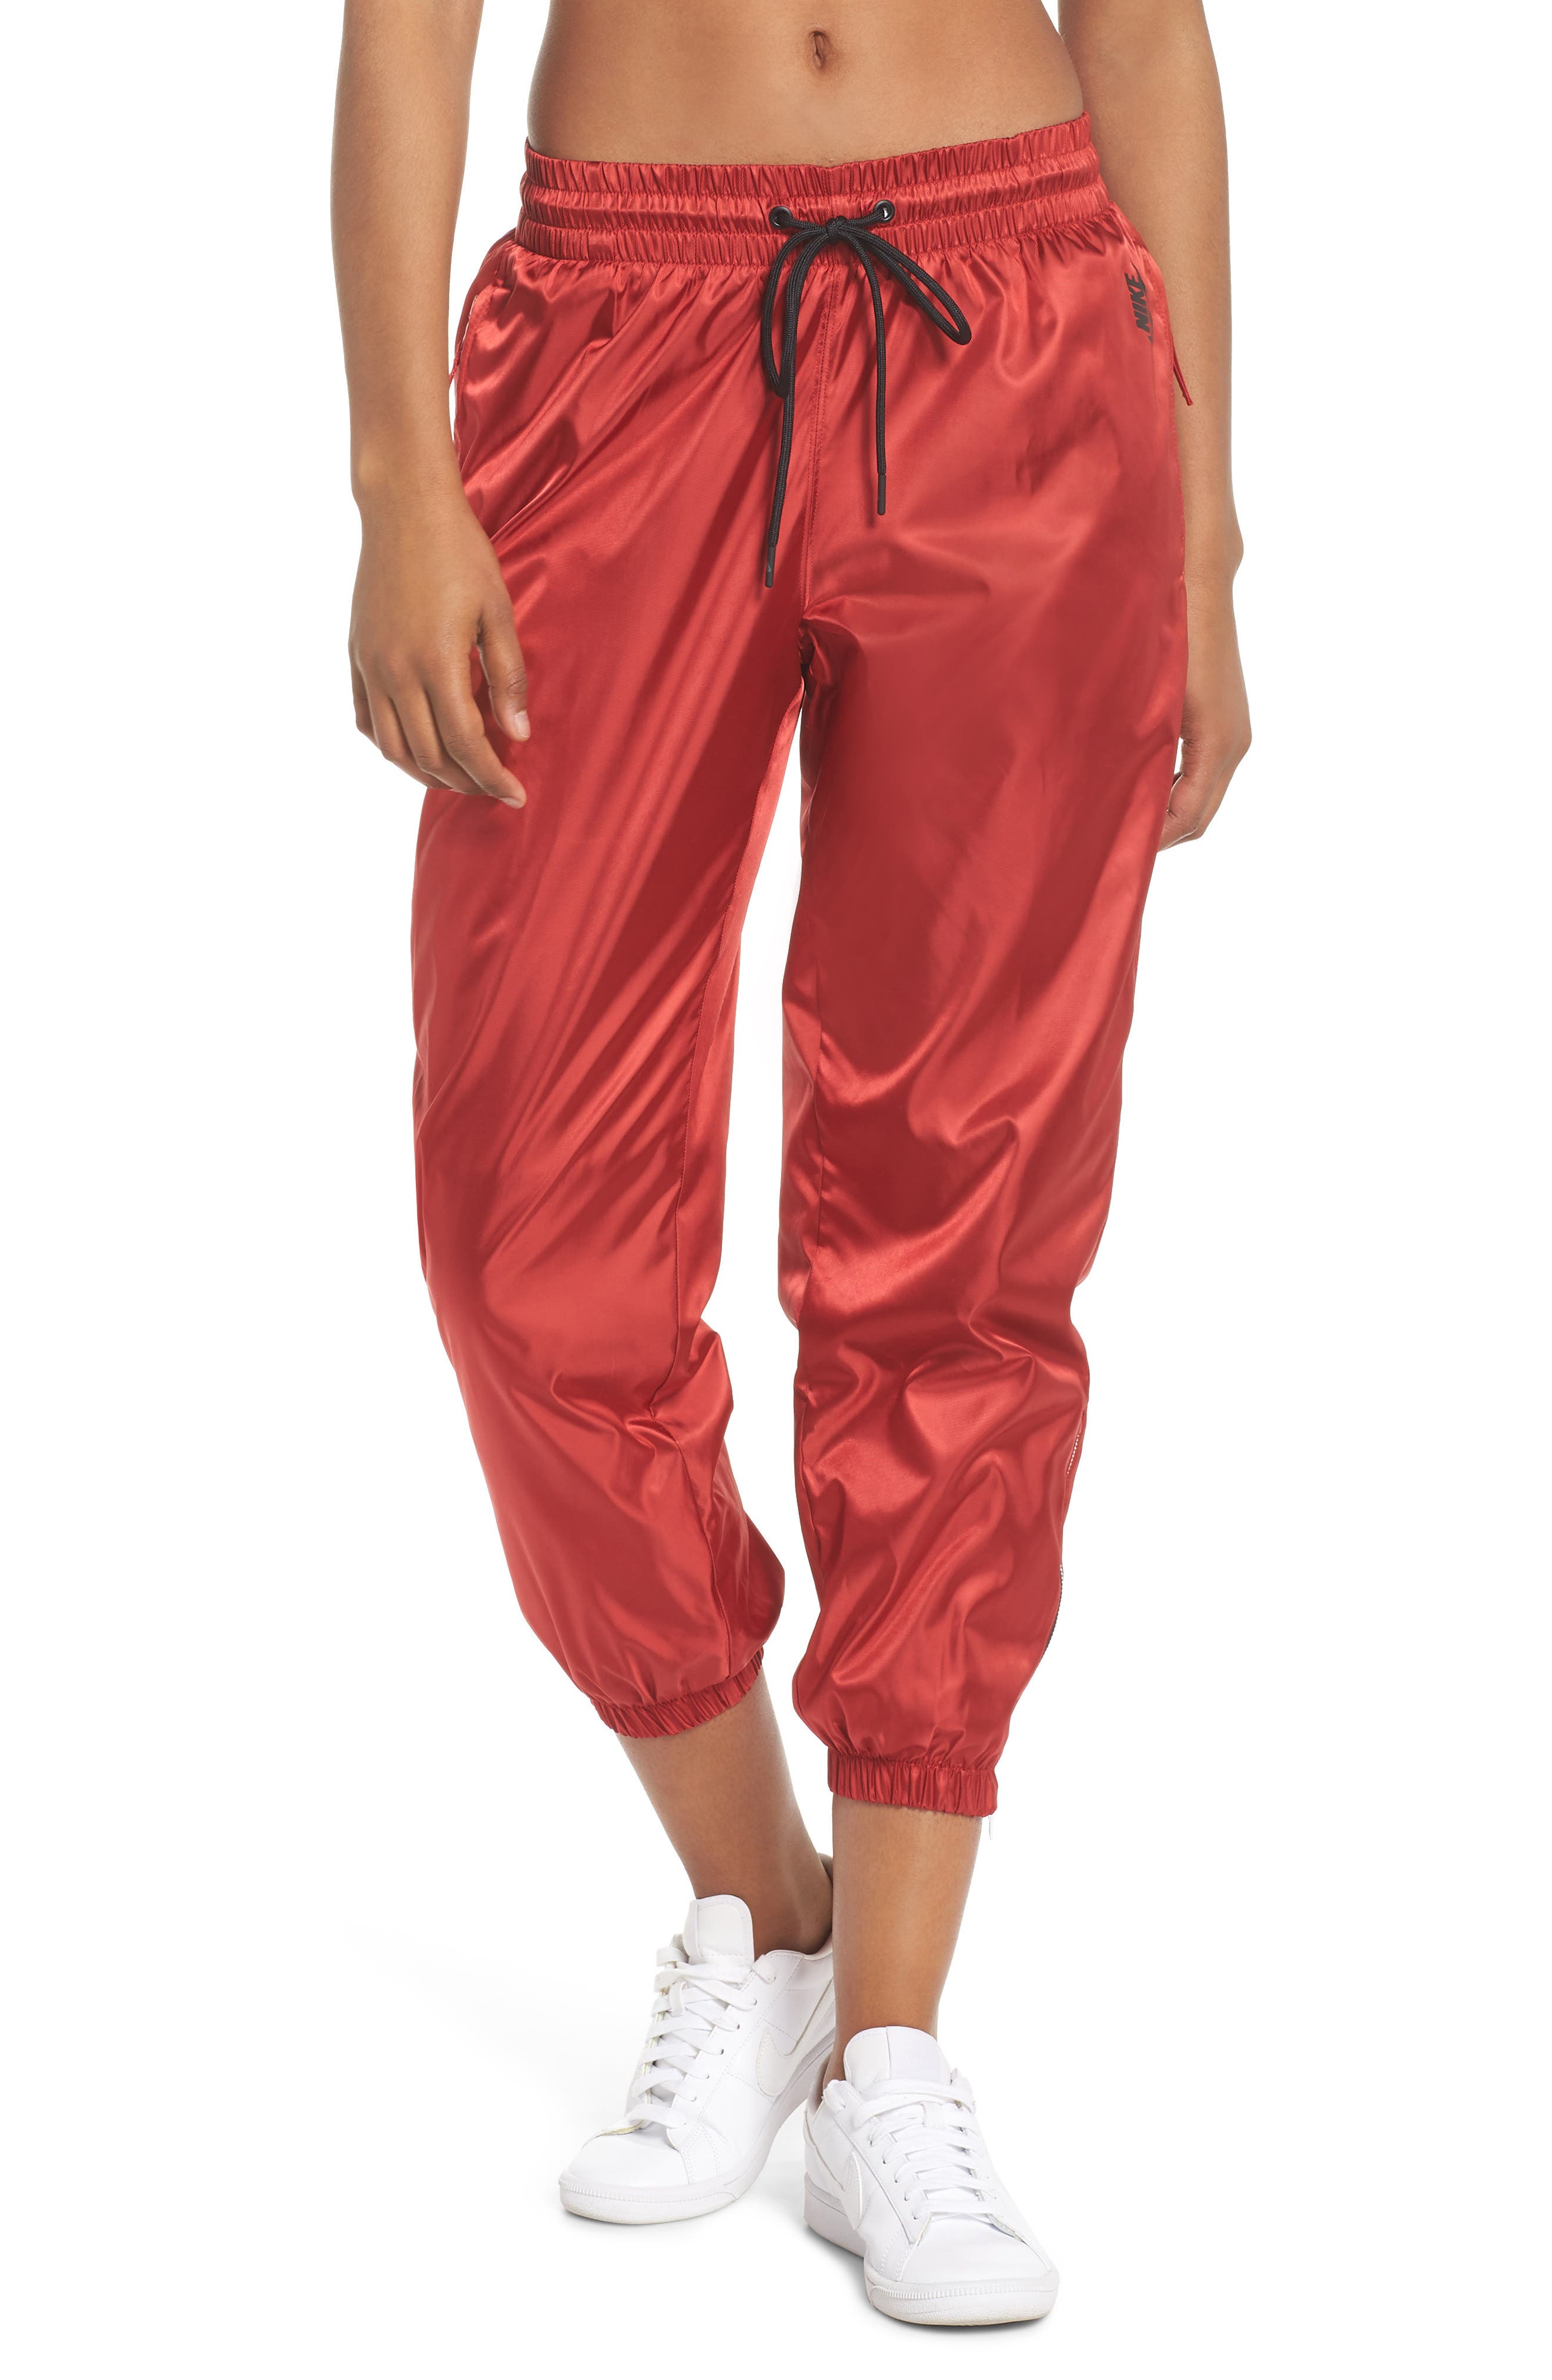 Nike NikeLab Collection Women's Satin Track Pants